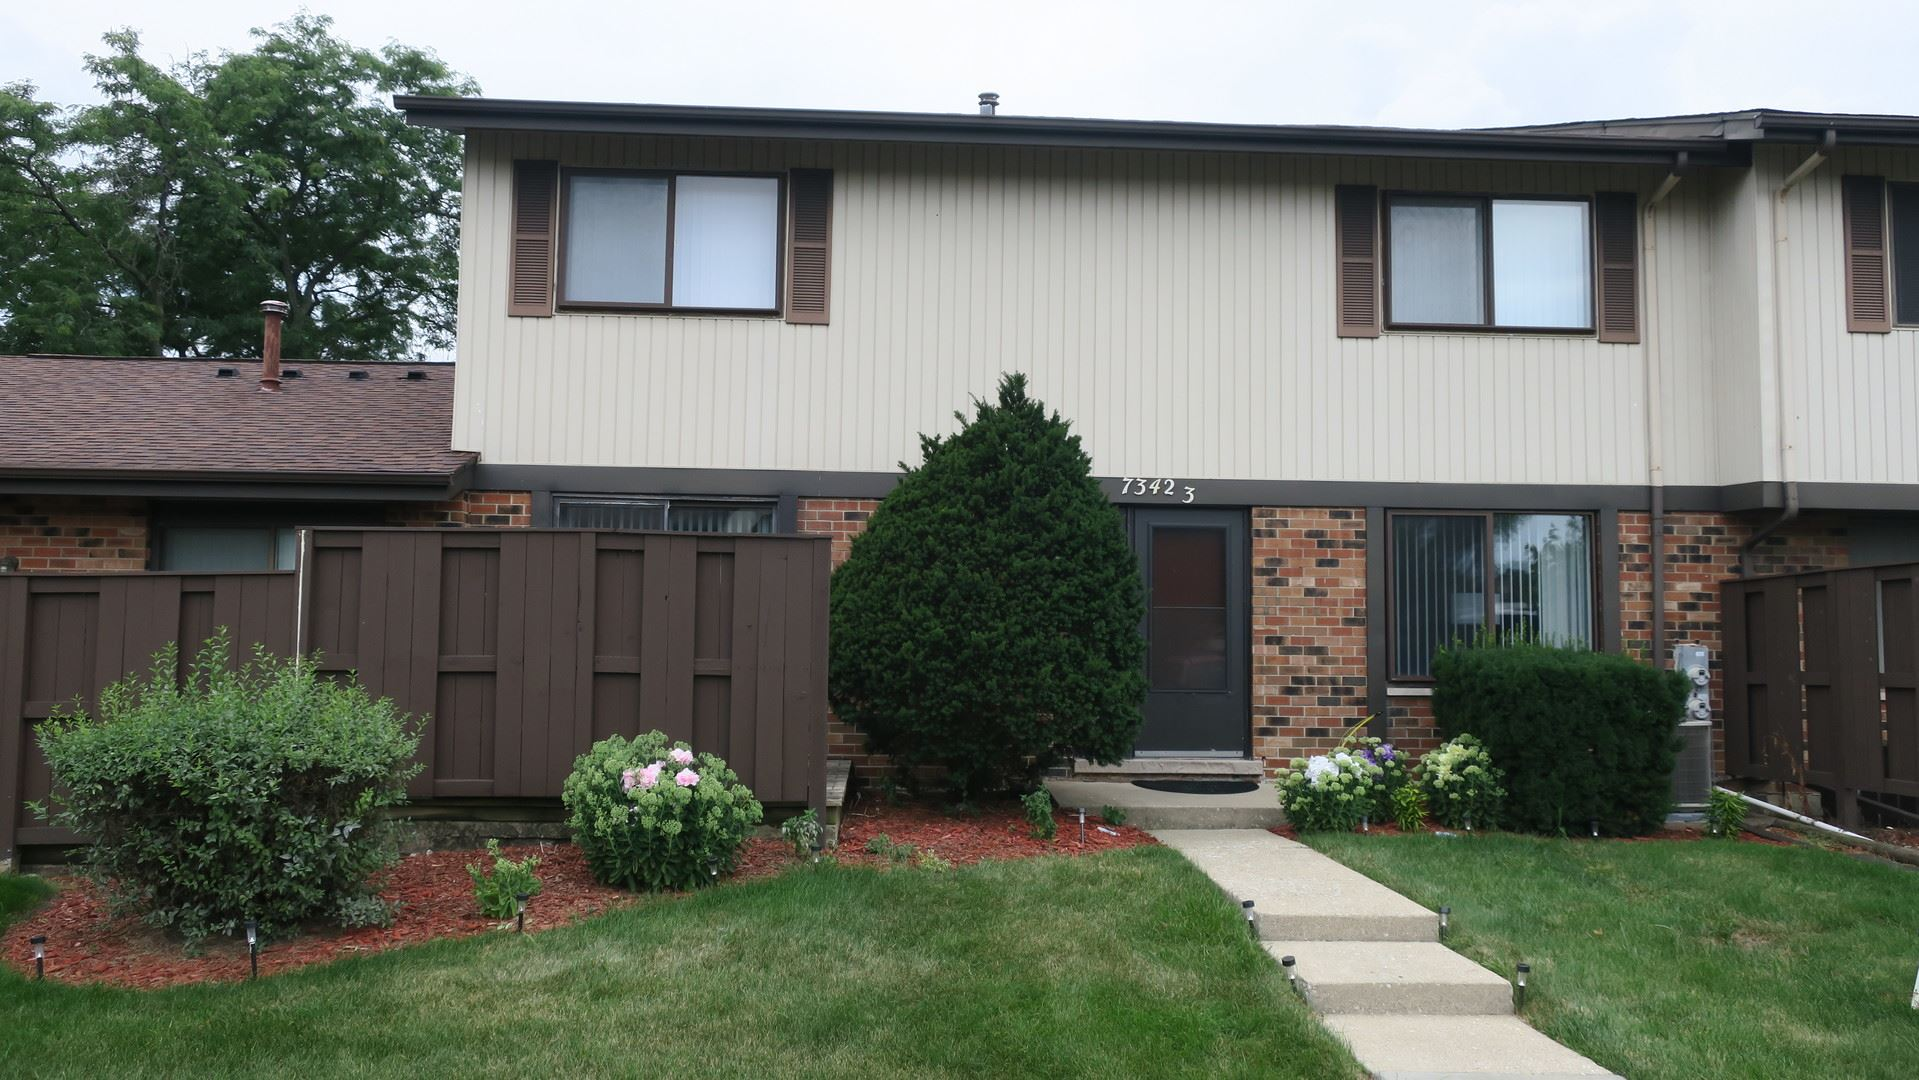 7342 Winthrop Way #3, Downers Grove, IL 60516 - #: 10803887